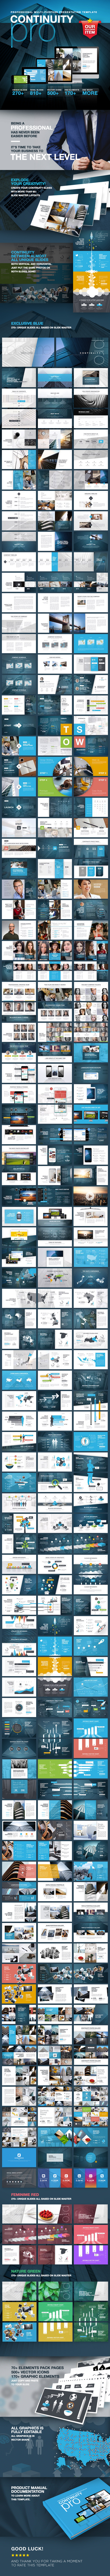 Continuity PRO PowerPoint (PowerPoint Templates)